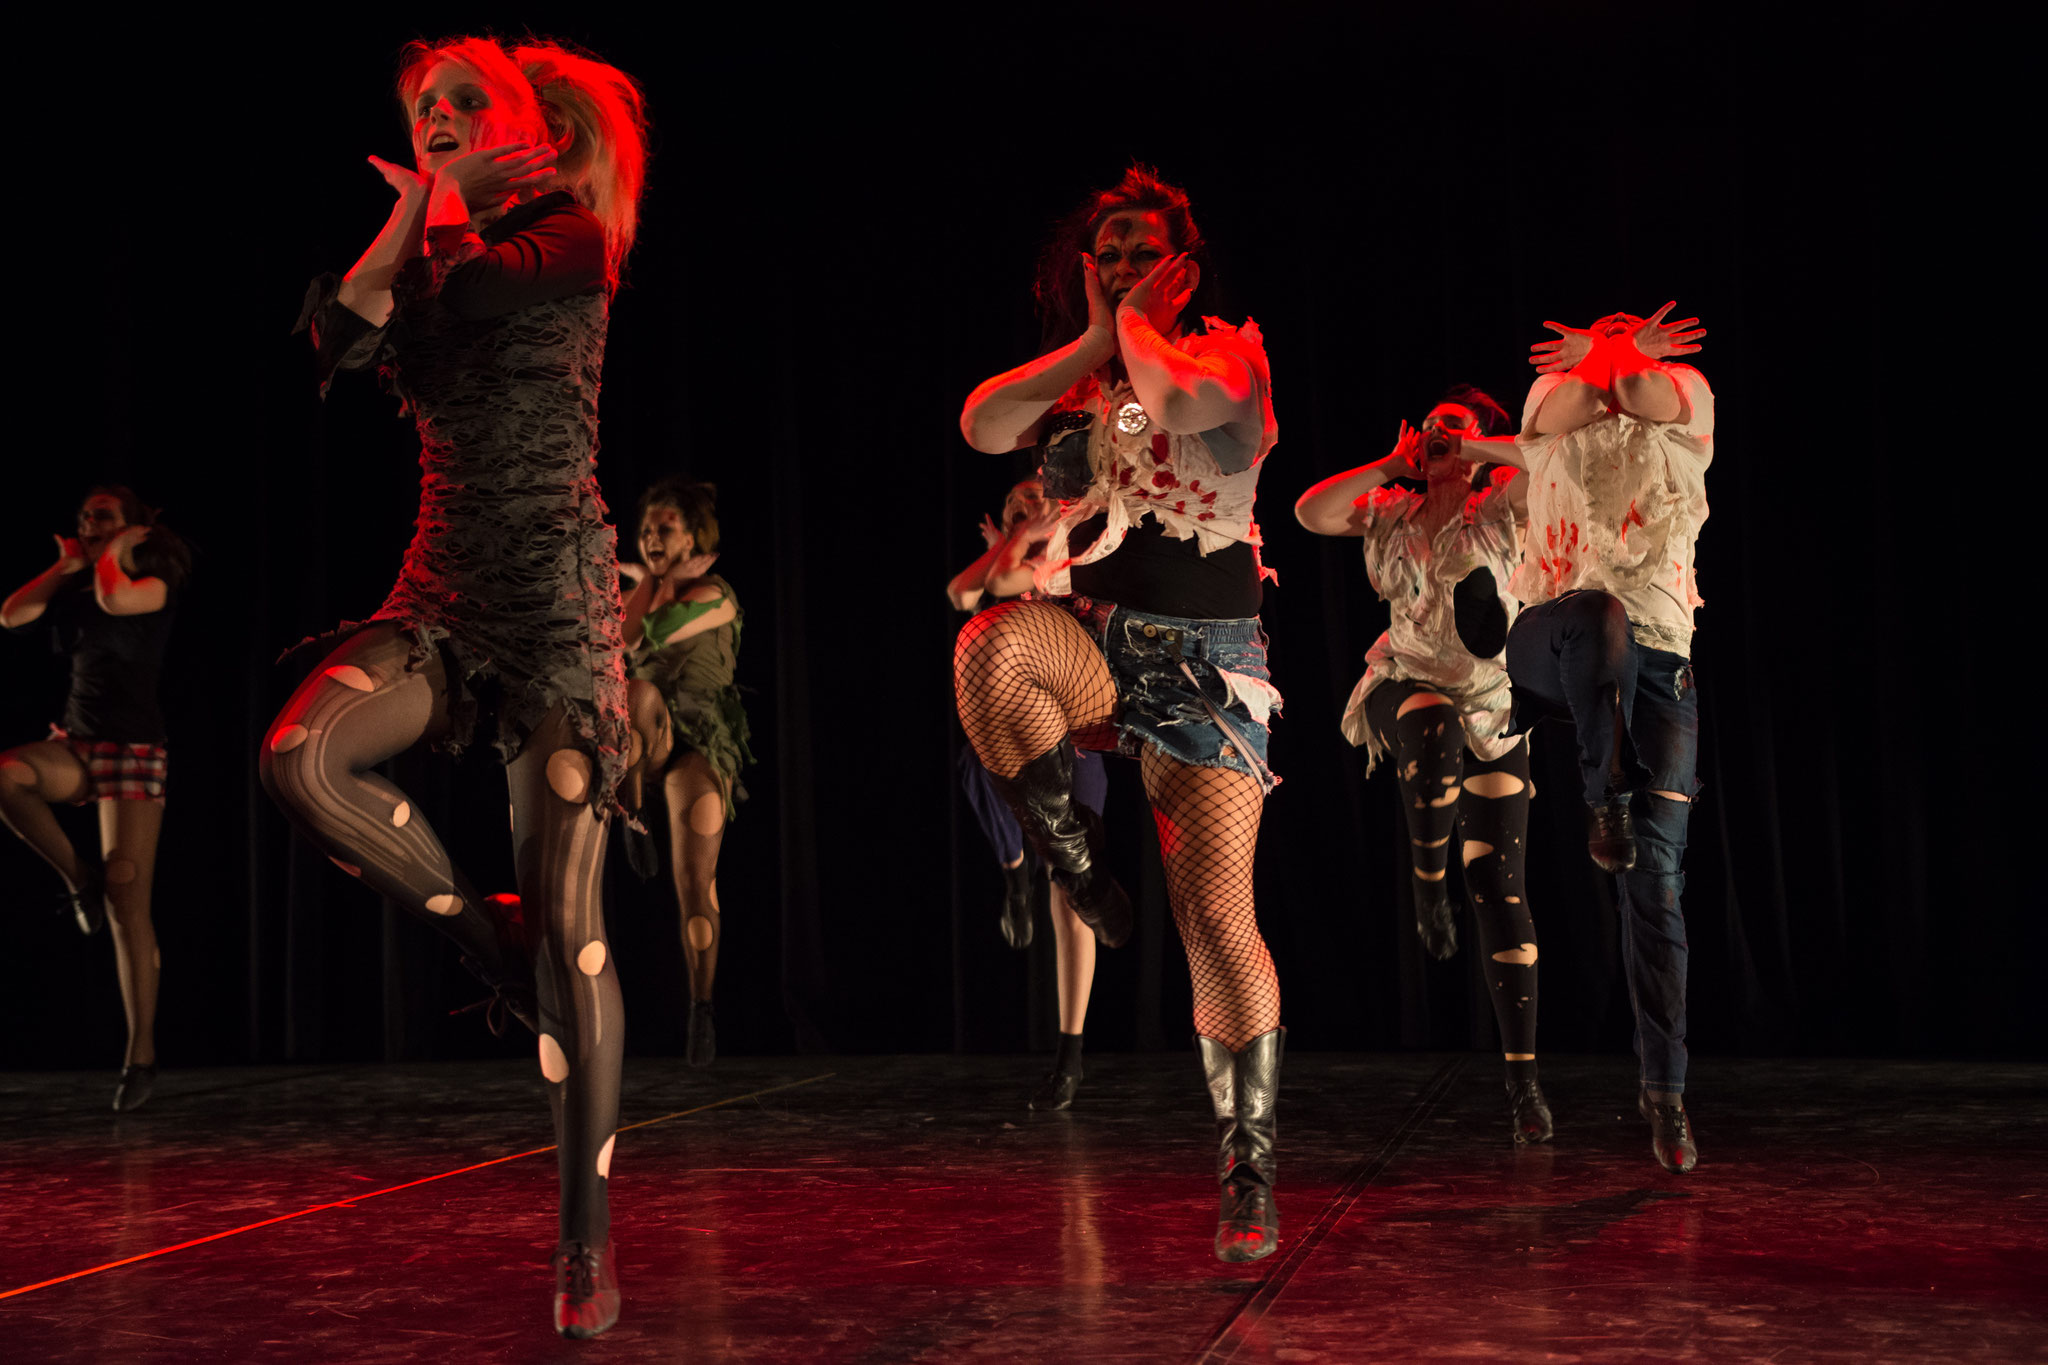 CarMa Chicks - Zombie Dance - Photo by Rainer Bolte Photography